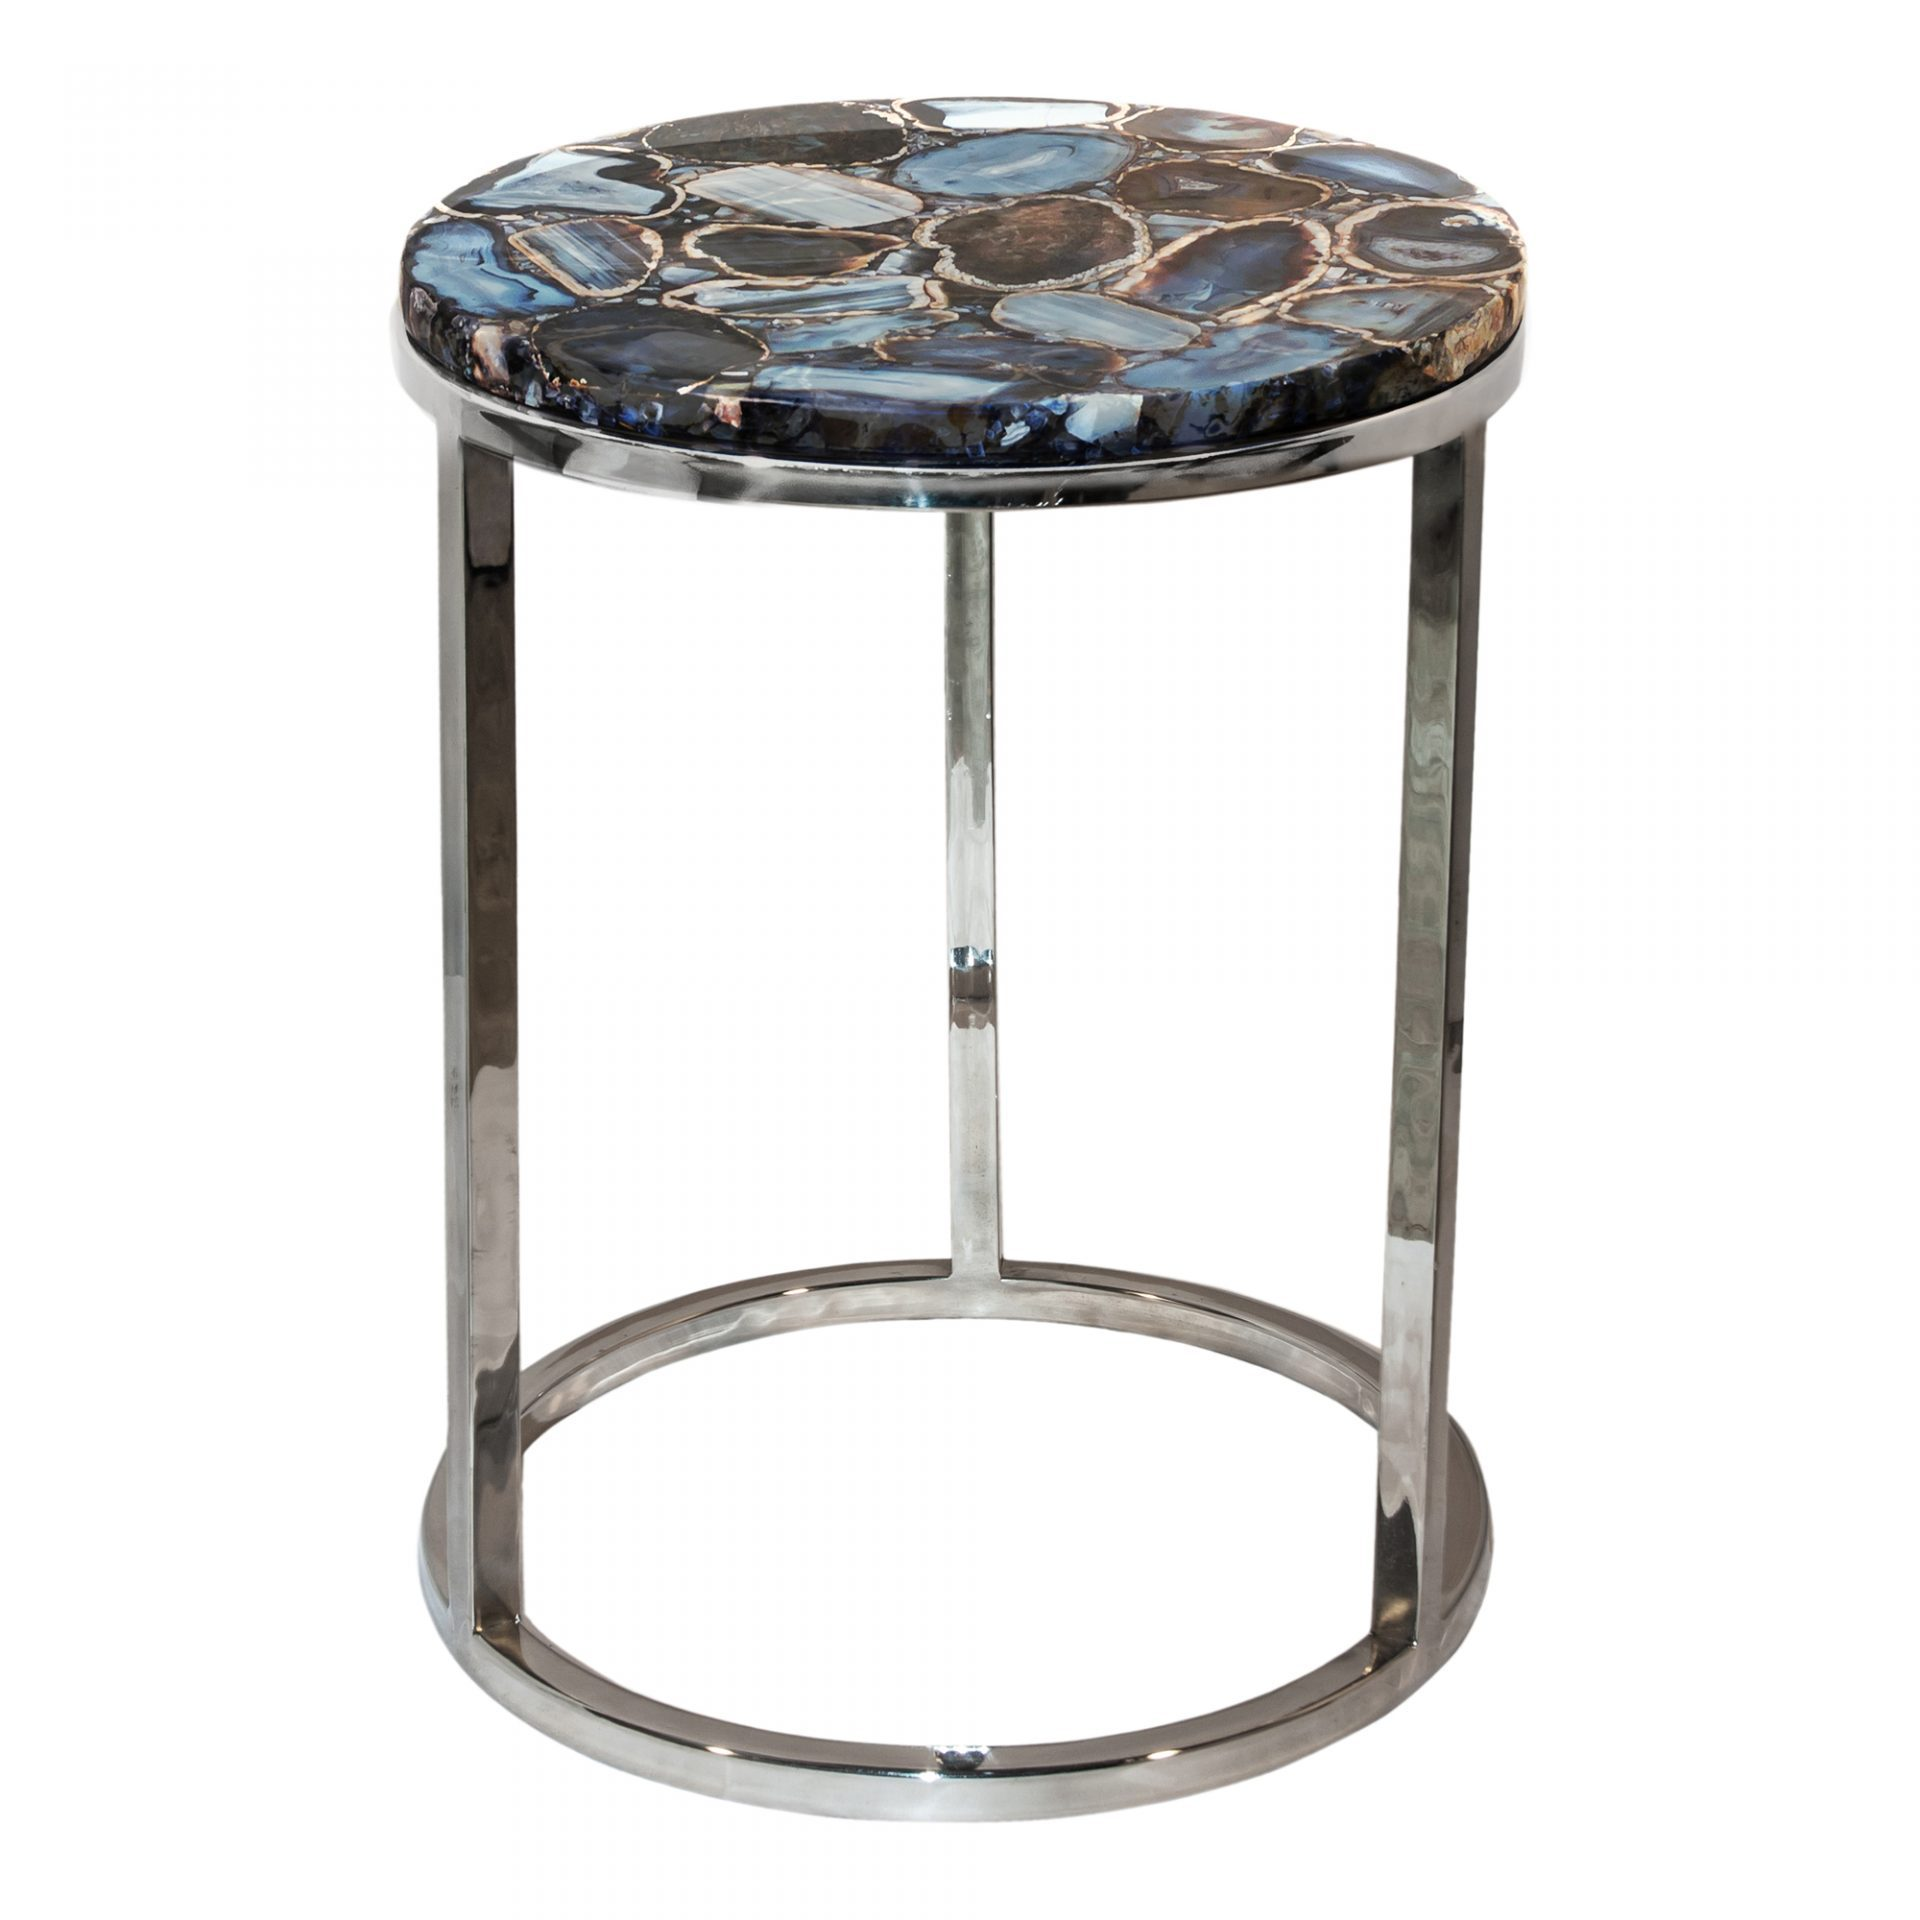 side table plus modern design round aluminum accent agate vintage metal legs piece and chairs home goods dining room sets antique marble top transparent cover janika end small